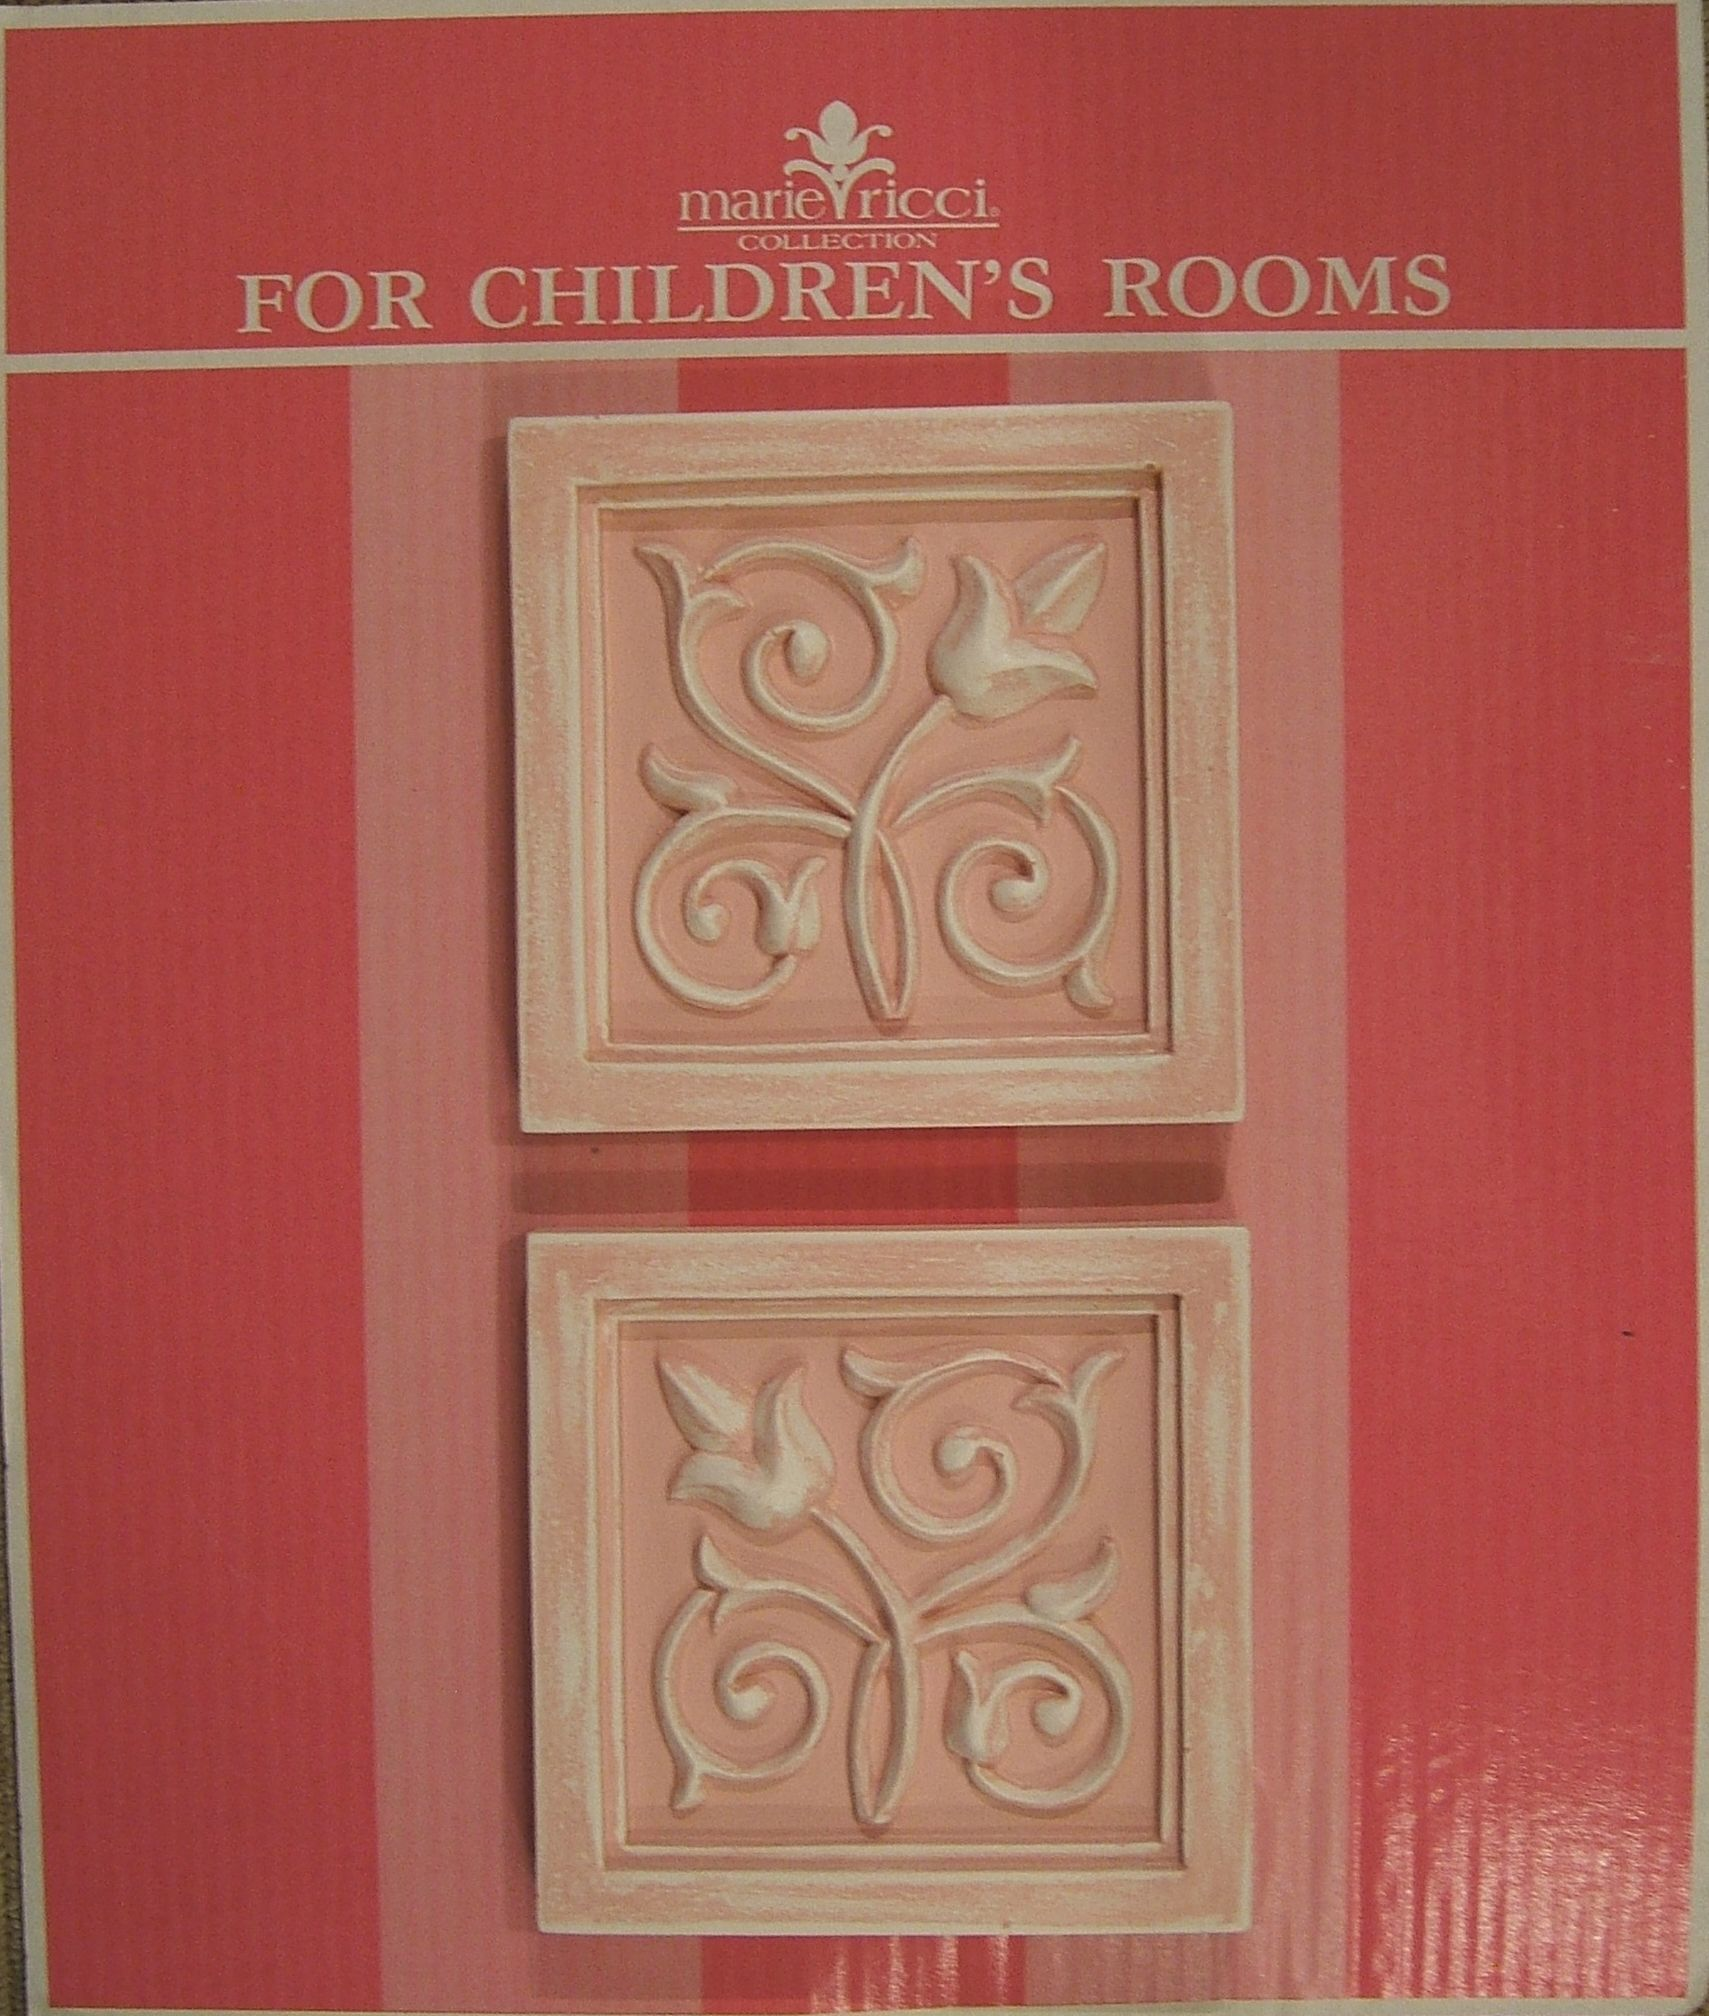 Children's Wall decor by Marie Ricci. Vine accent plaques shown in distressed pink. www.mariericci.com $100